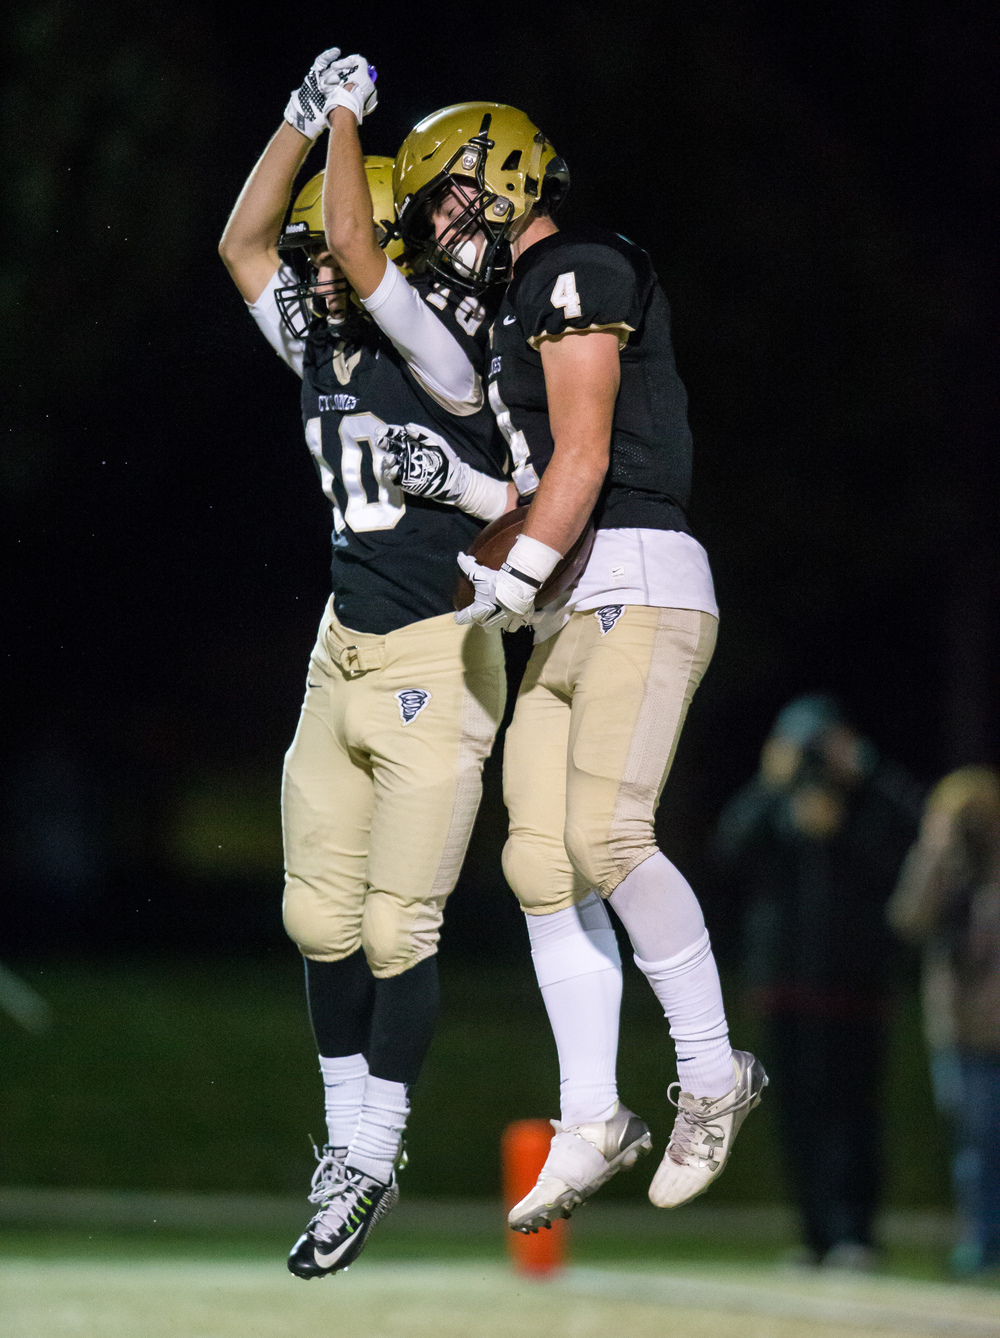 Sacred Heart-Griffin's Sam Bonansinga (4) celebrates his touchdown with Jake Reid (10) against Palos Heights Shepard in the second quarter during the first round of the Class 6A playoffs at the Sacred Heart-Griffin Sports Complex, Friday, Oct. 30, 2015, in Springfield, Ill. Justin L. Fowler/The State Journal-Register